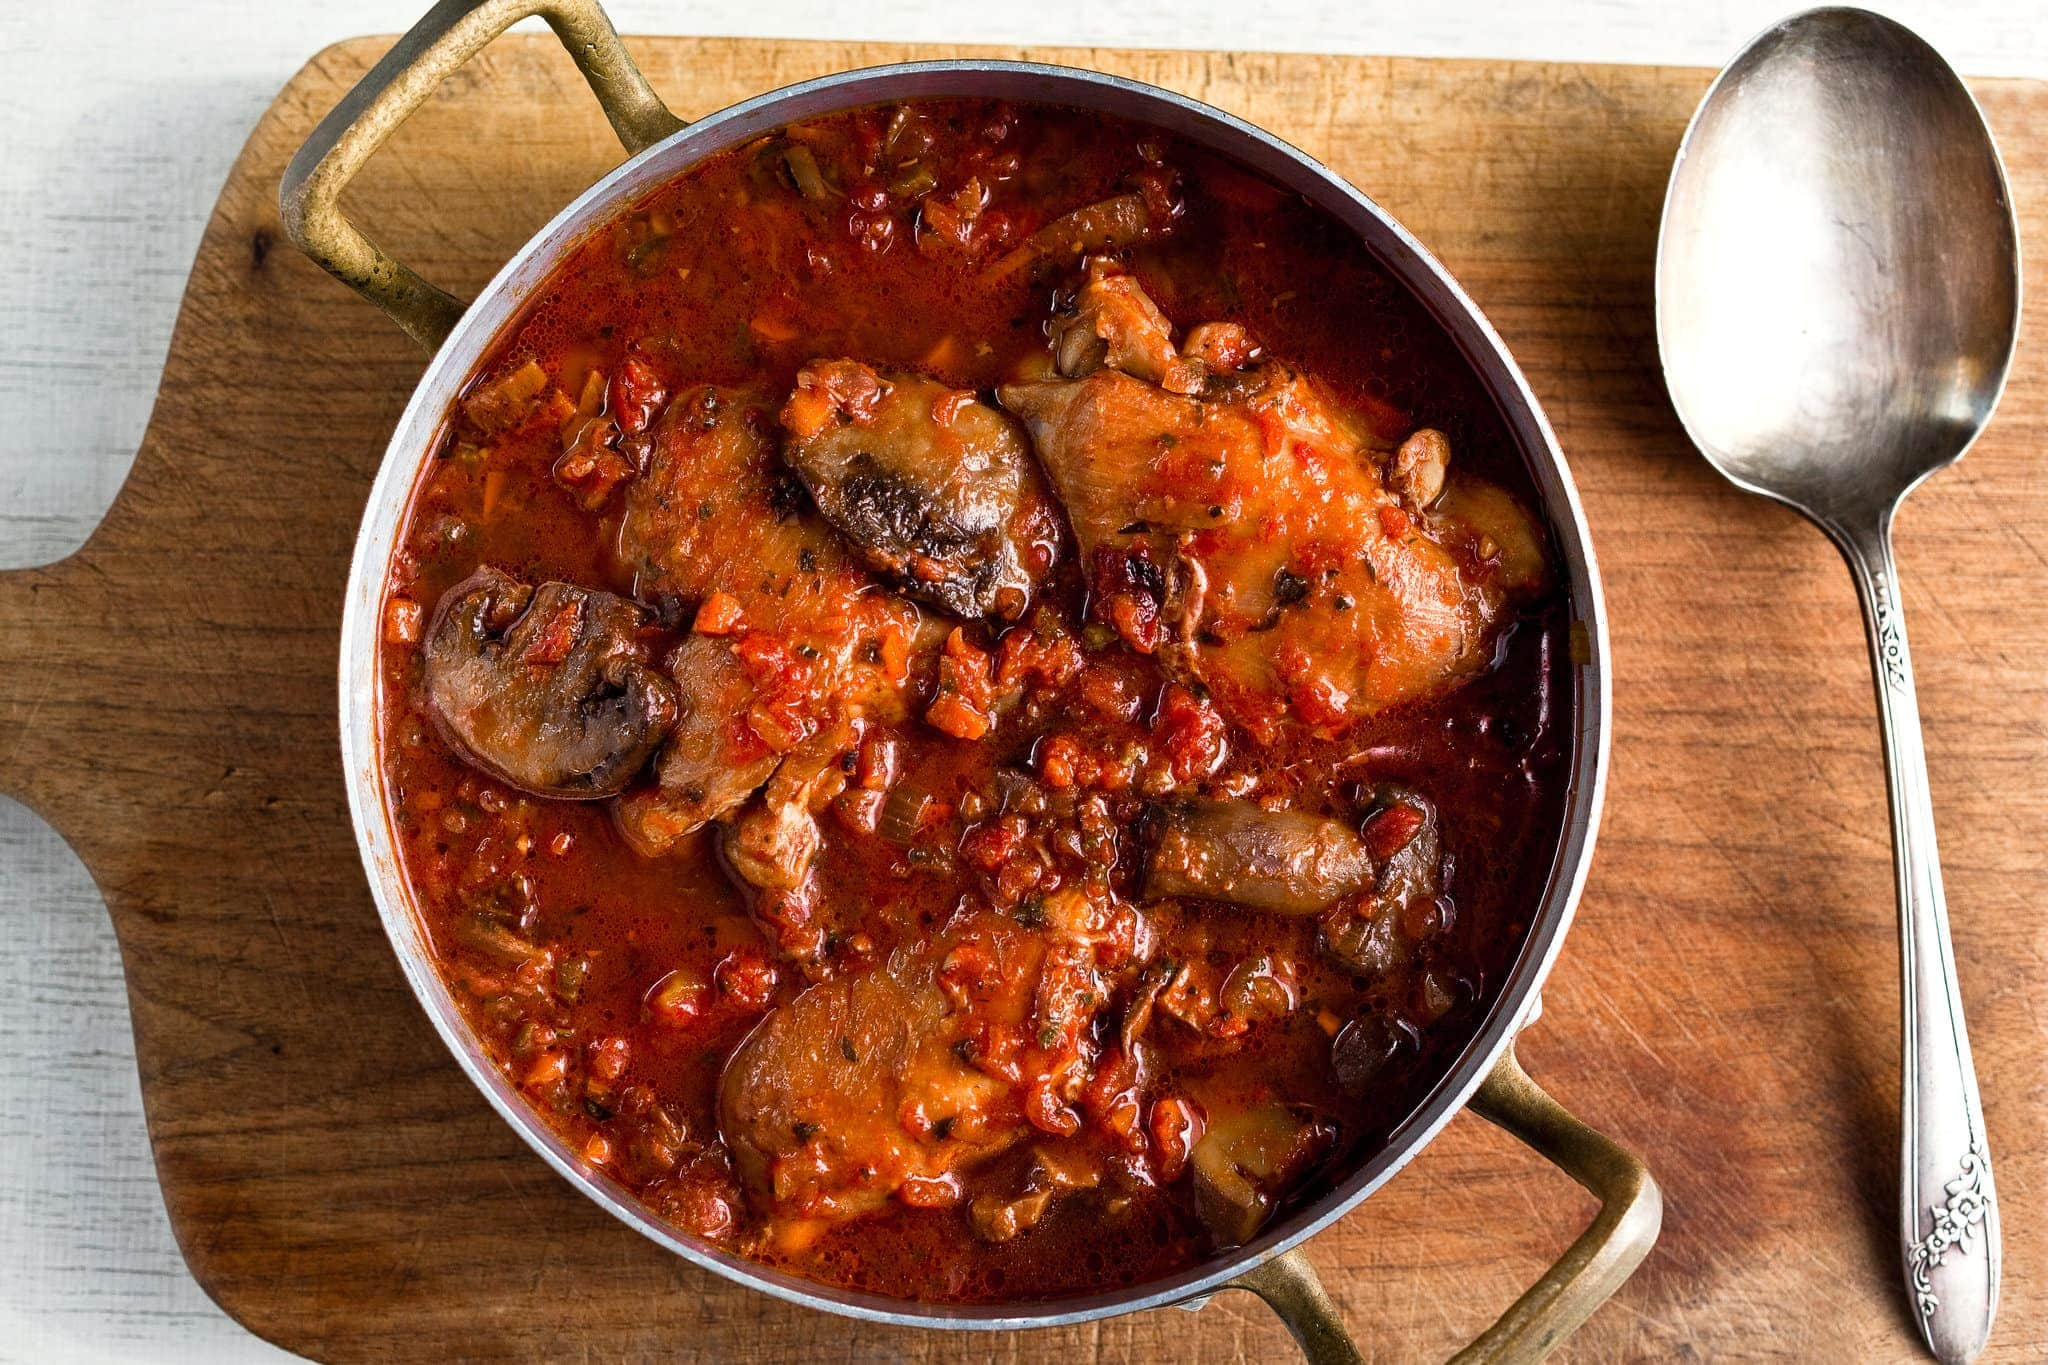 This authentic Italian chicken cacciatore recipe will make you lick your fingers.